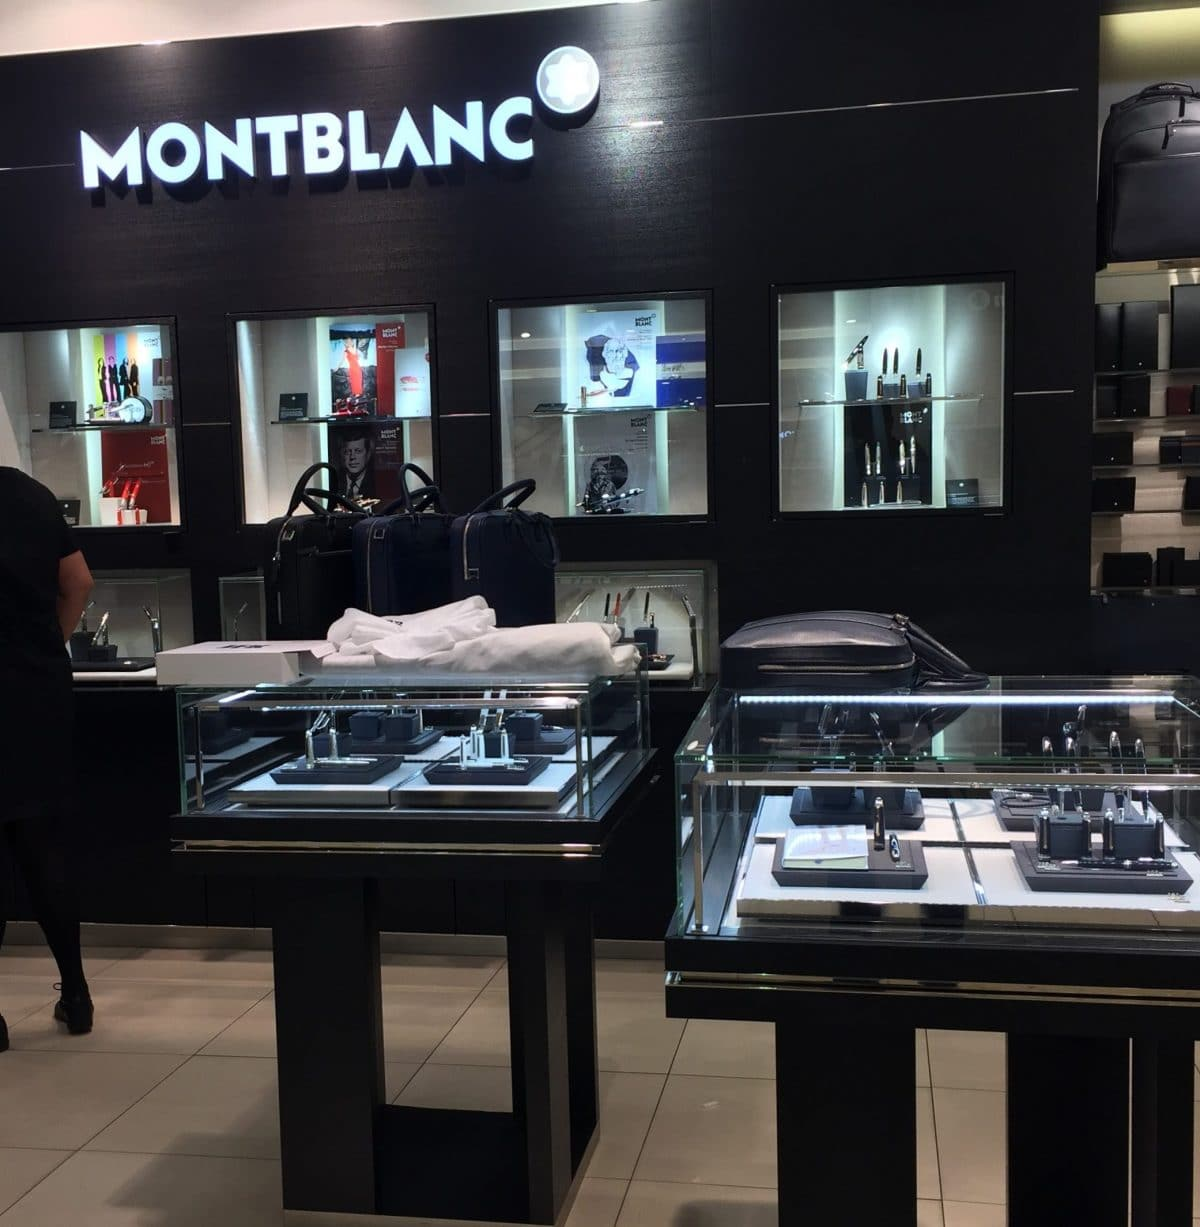 Montblanc digital manager Guillaume Brocart luxury